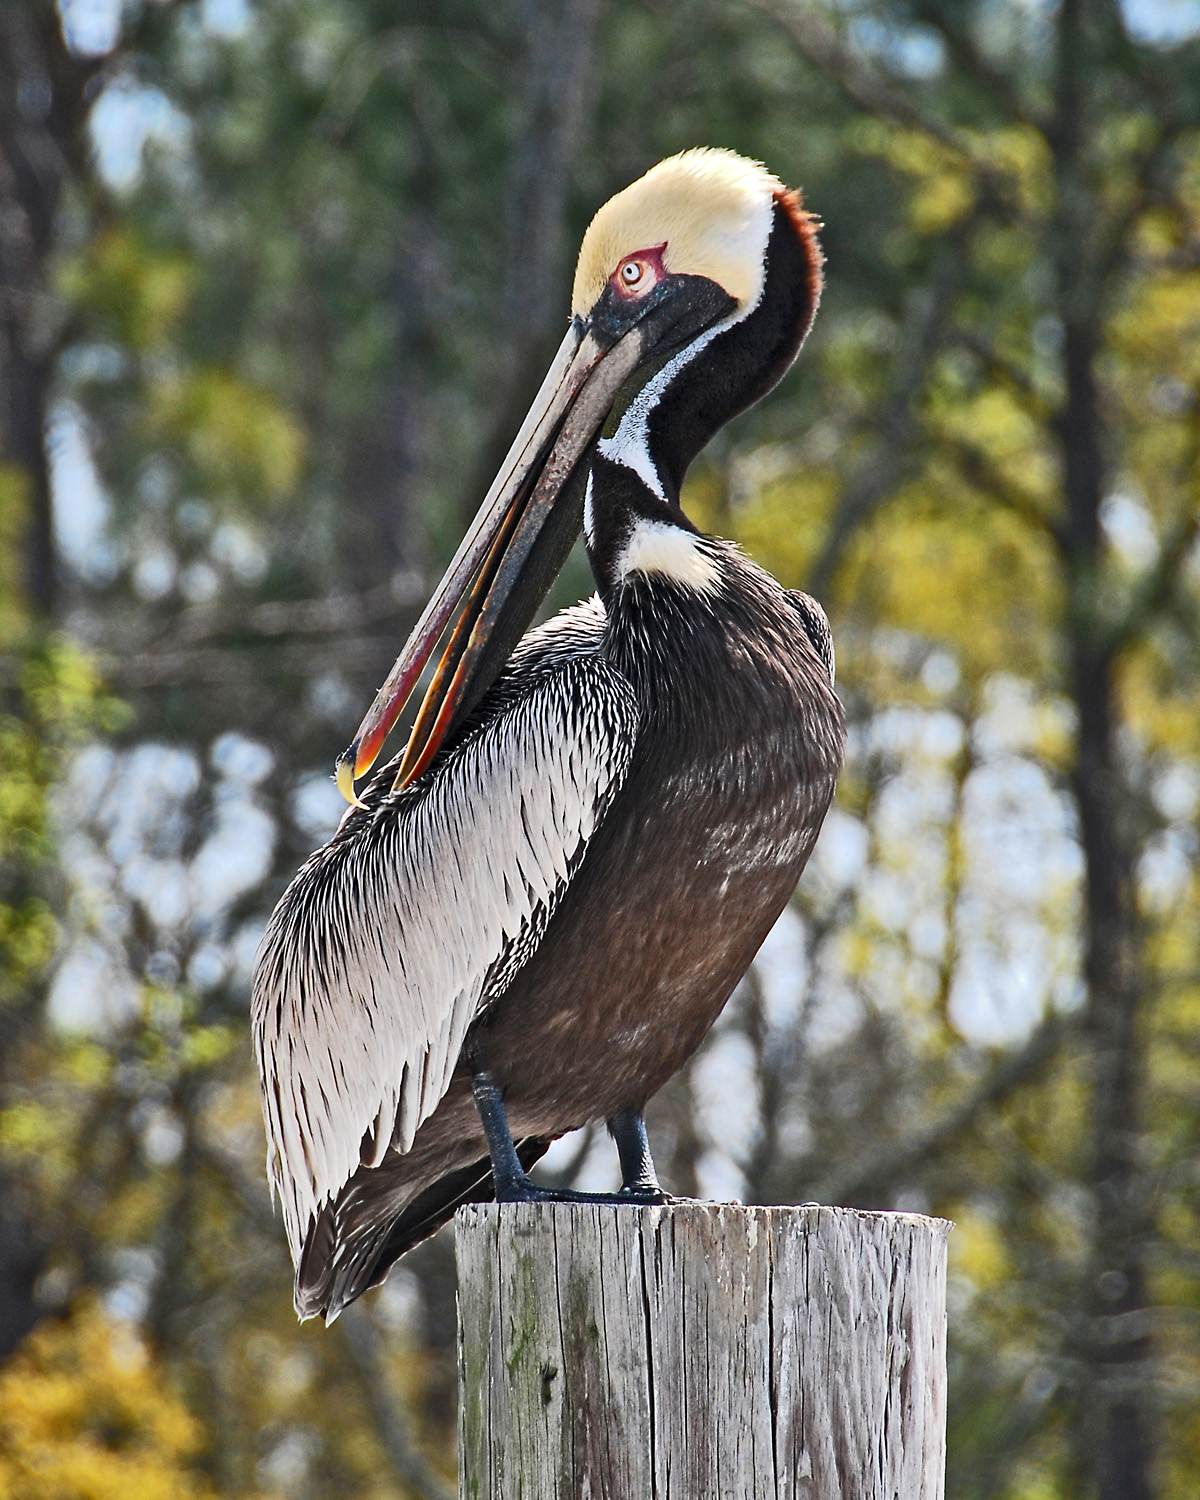 grandpaw's image thread-pelican-pole-item-2303270810-1028355375-o.jpg